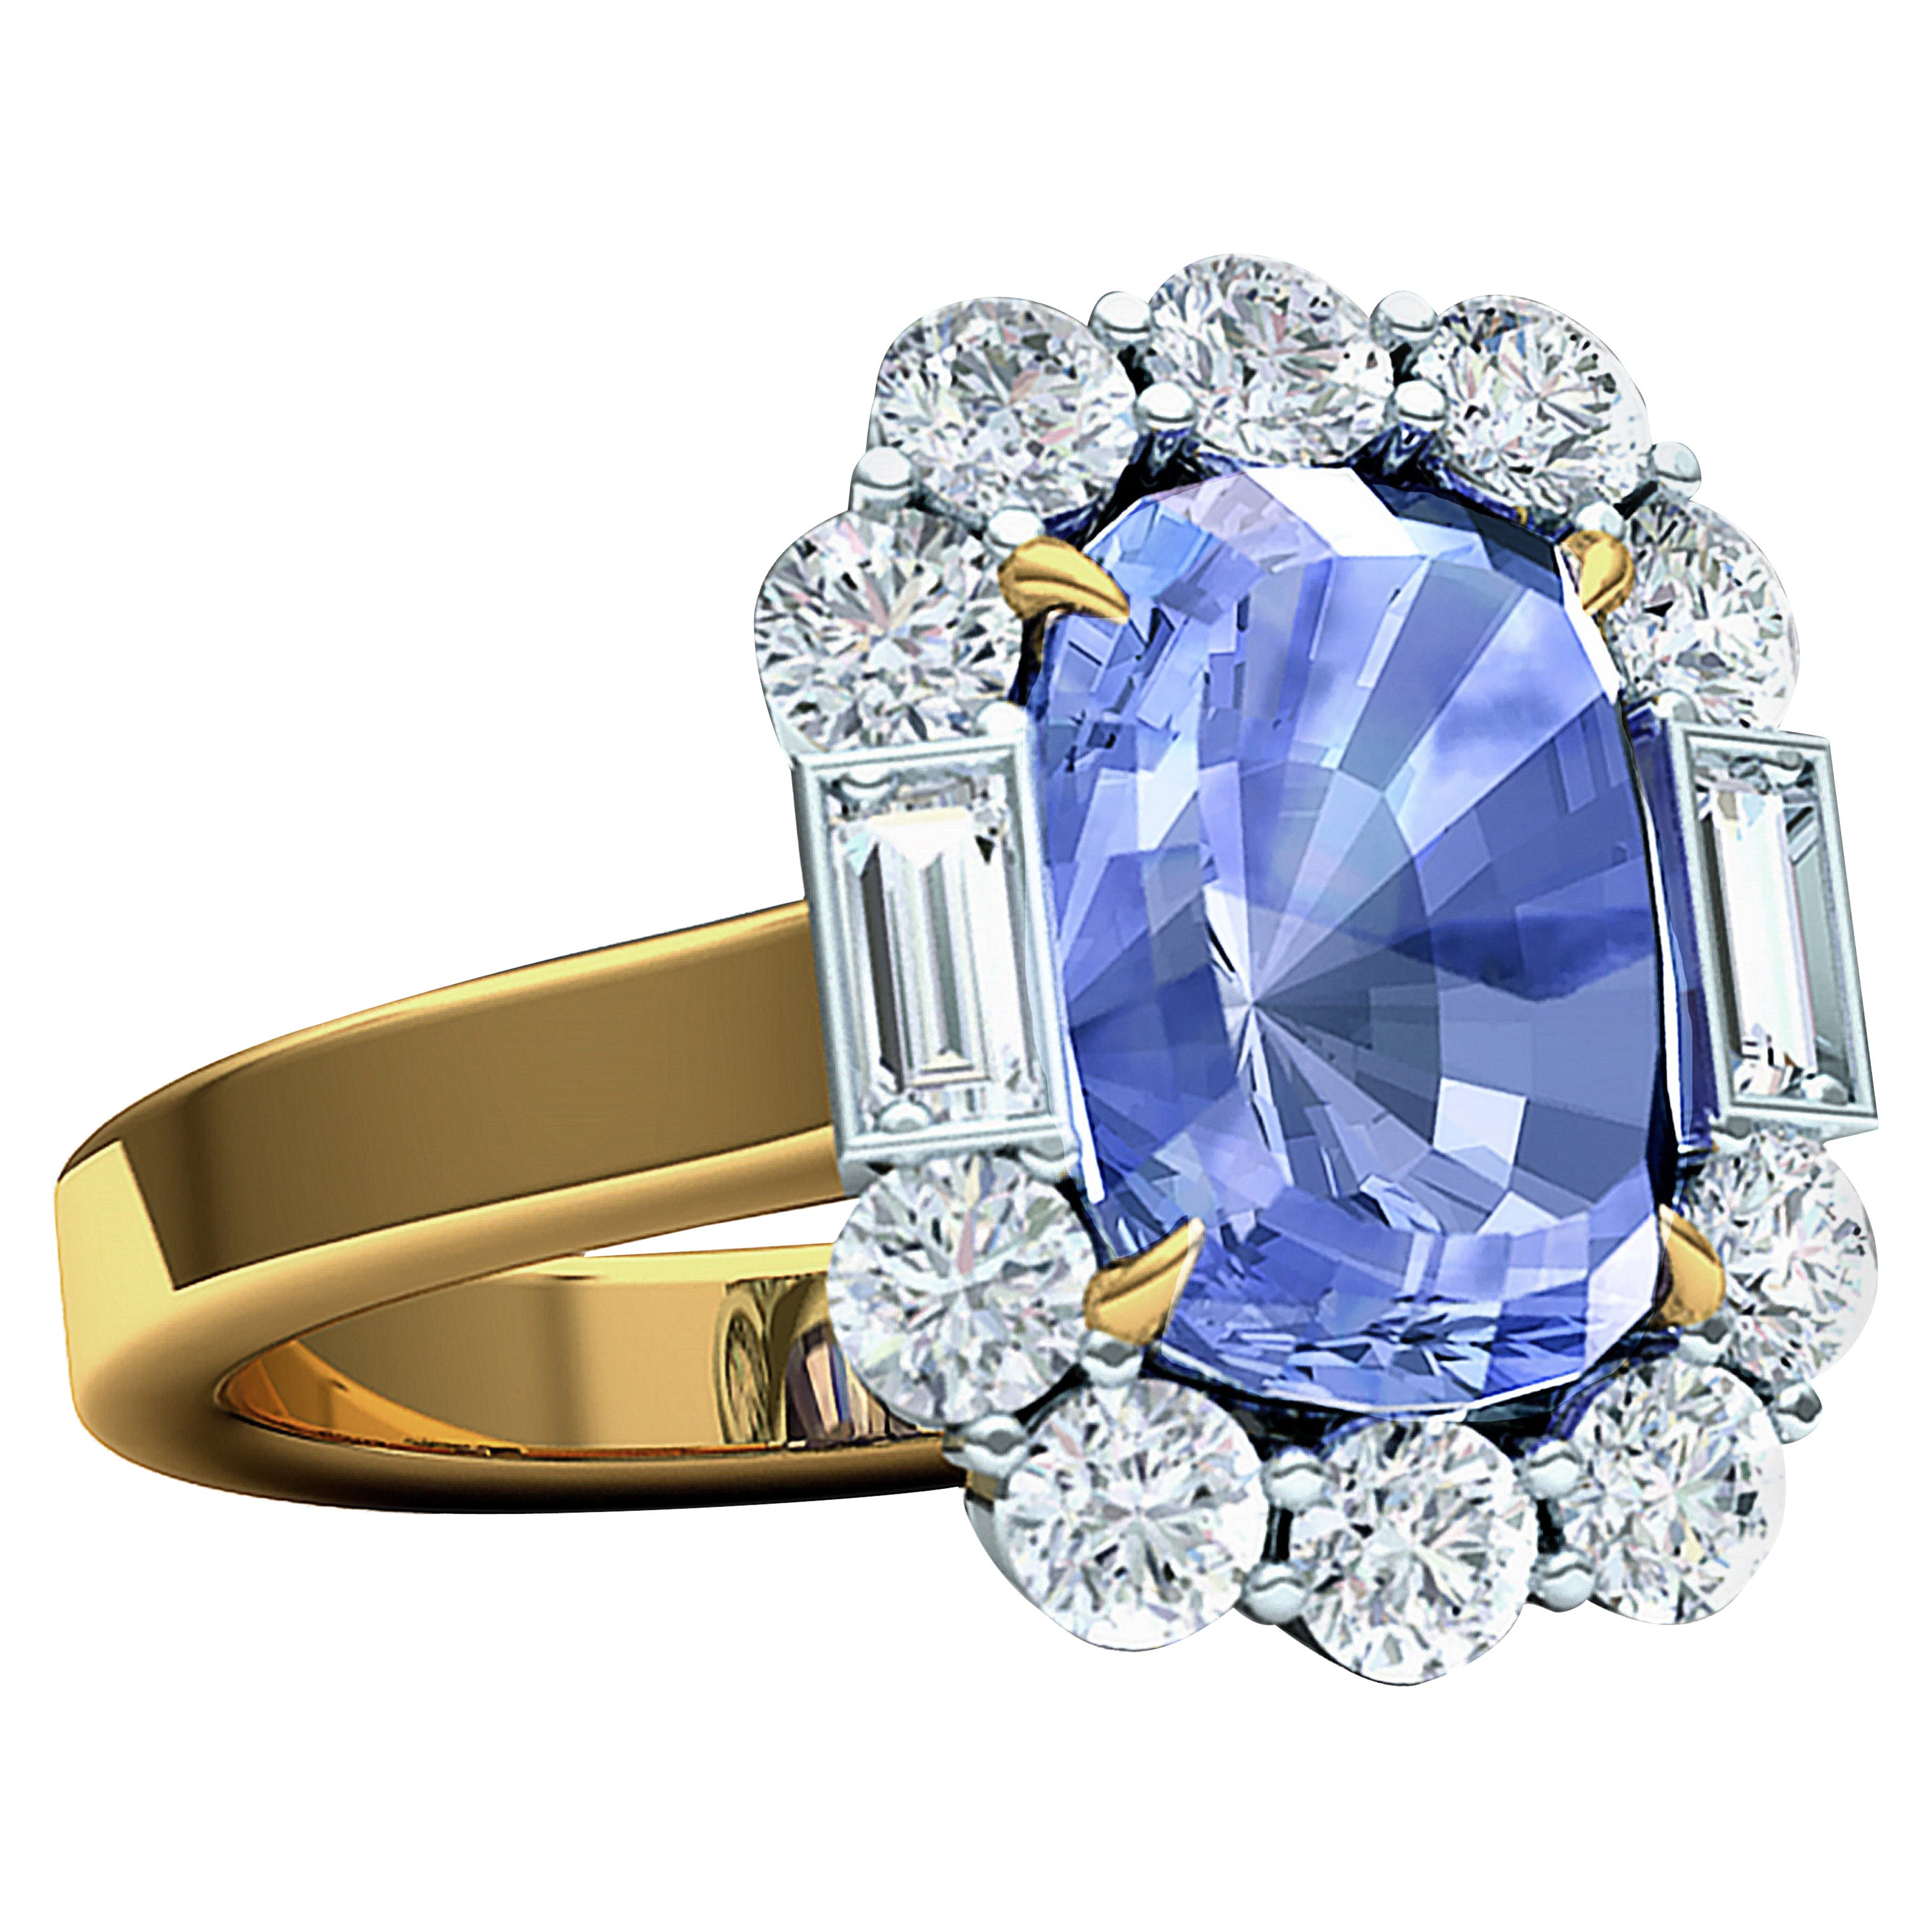 5.45 Sapphire Certified Unheated Diamond Platinum and Yellow Gold Ring